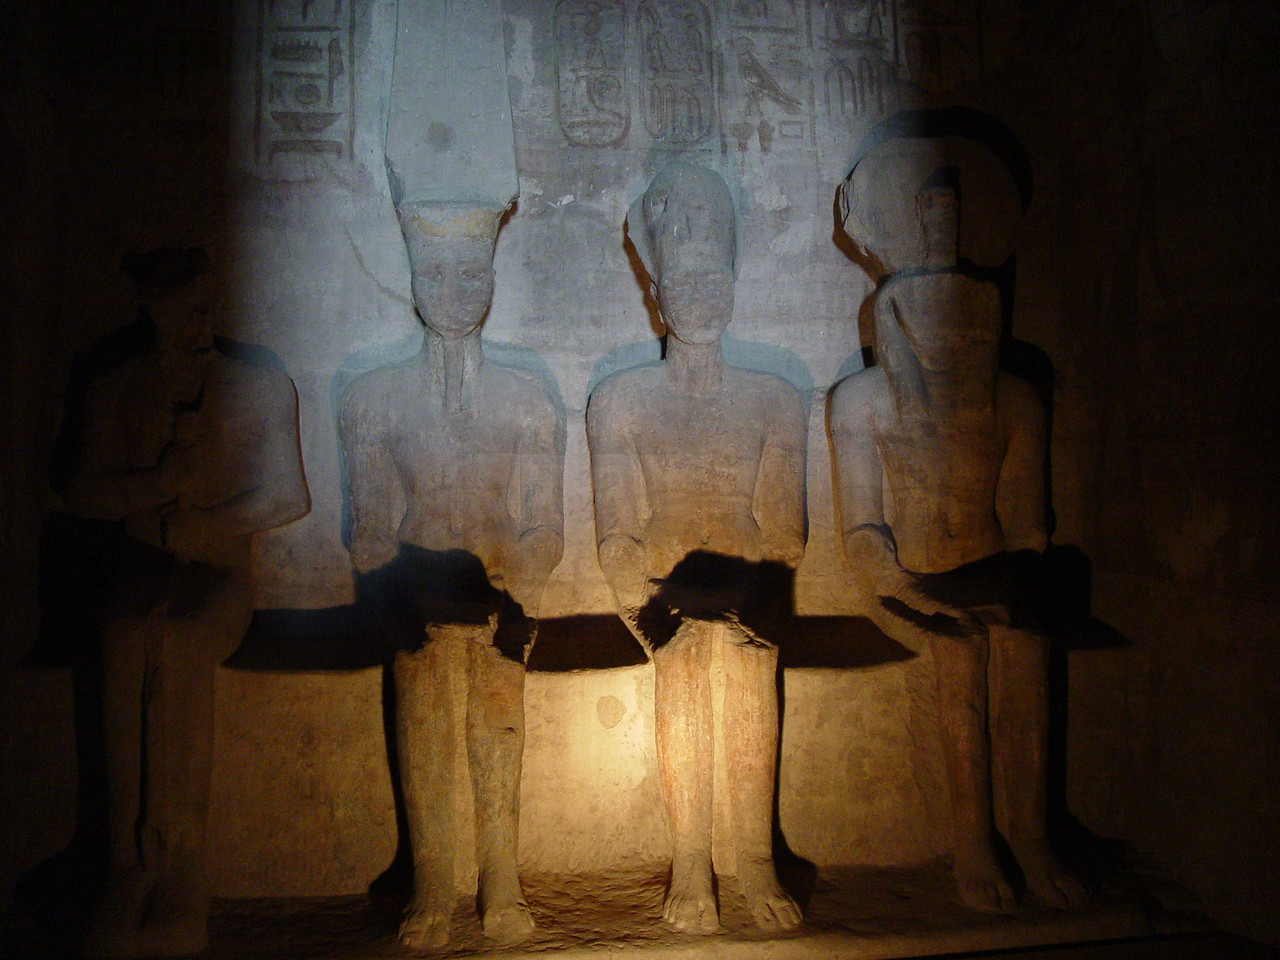 g) The alignment of the temple is such that twice a year the sun's rays illuminate the seated statues of Ptah, Amun-Re, Ramesses II, and Re- Horakhty.